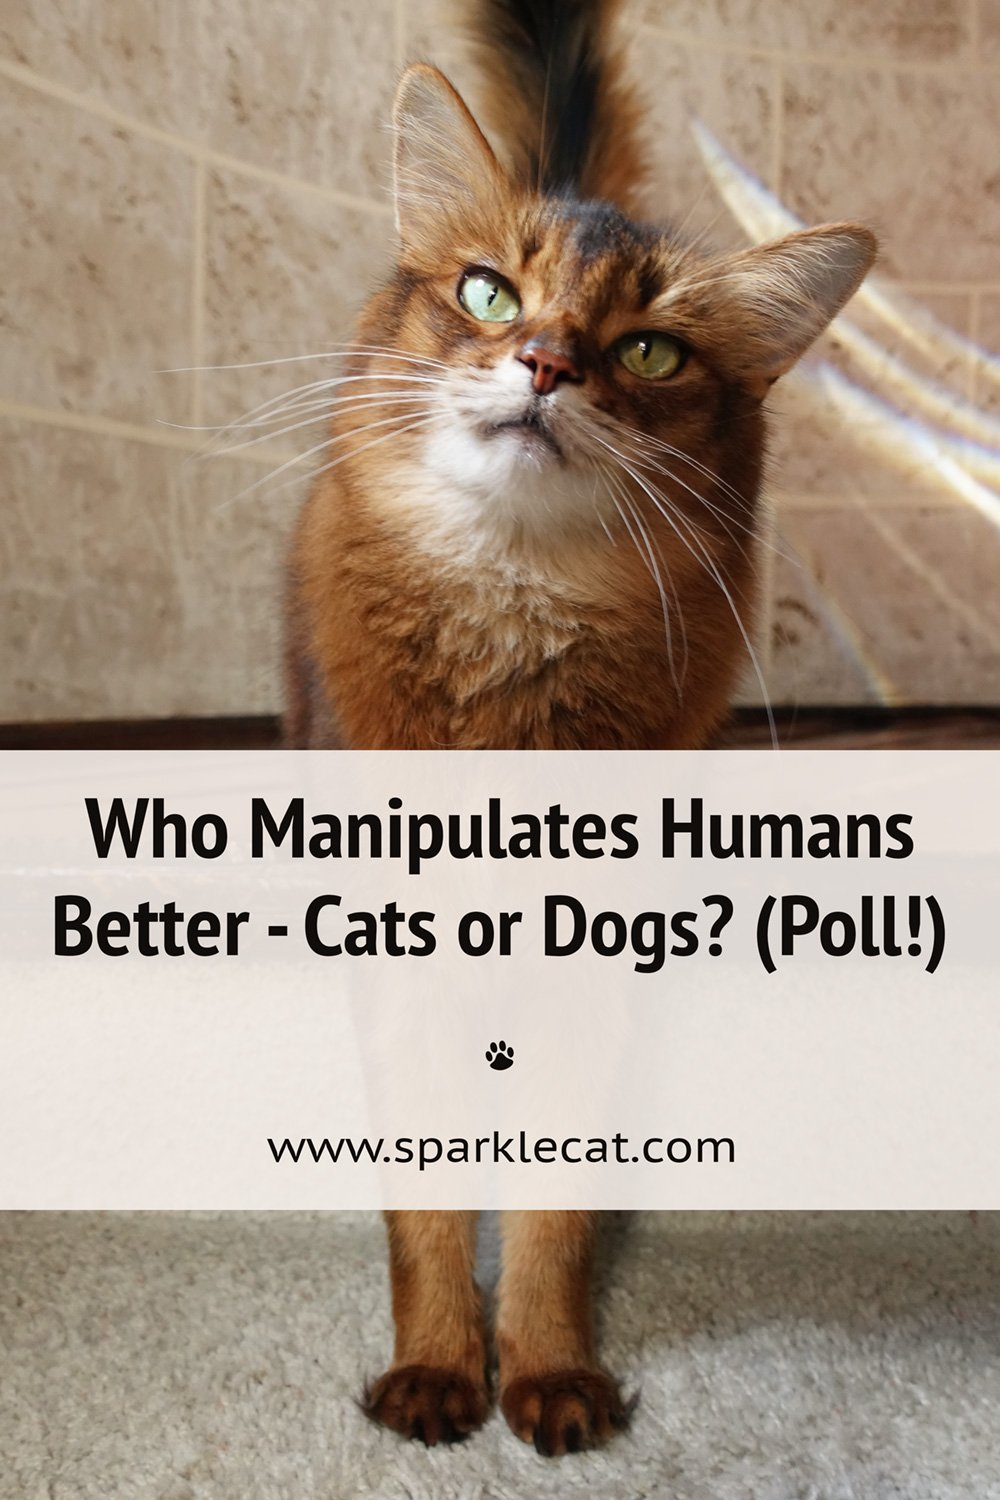 Who Is Better at Human Manipulation - Cats or Dogs? (Poll!)